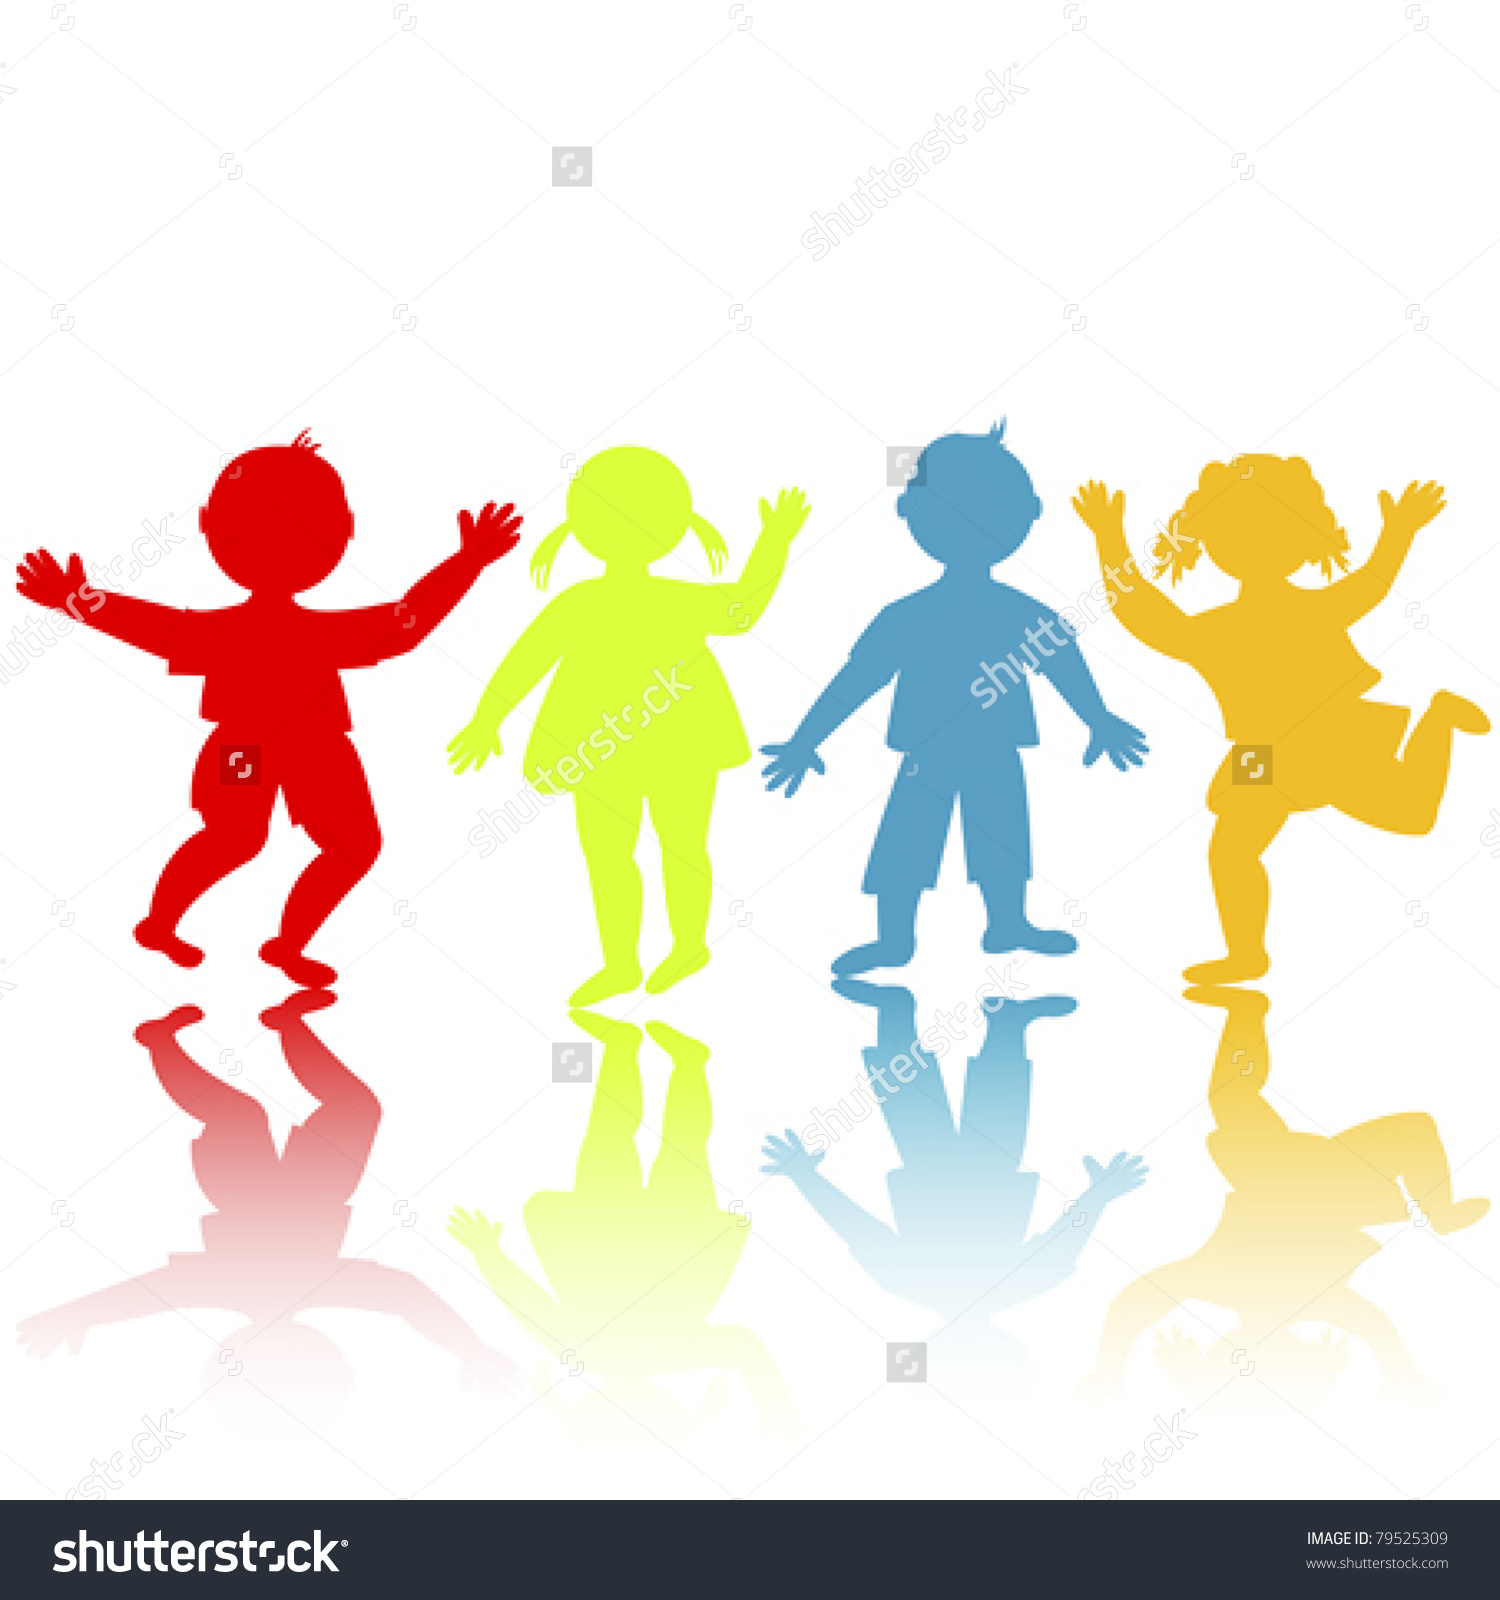 Colored Children Silhouettes Playing Stock Vector 79525309.